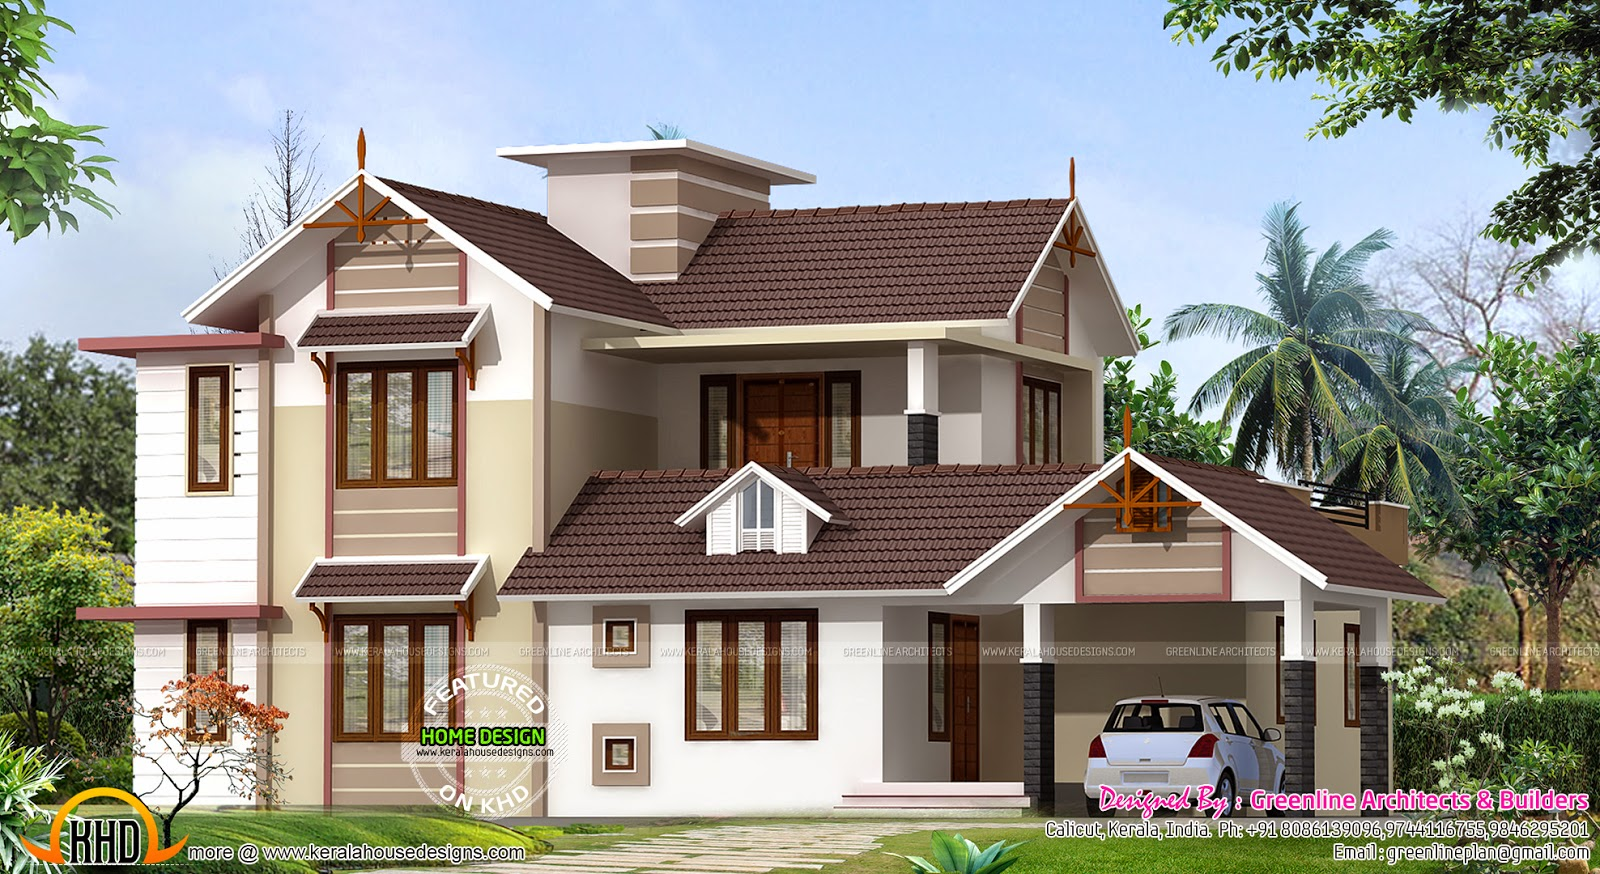 2400 sq ft new house design kerala home design and floor House plans and designs